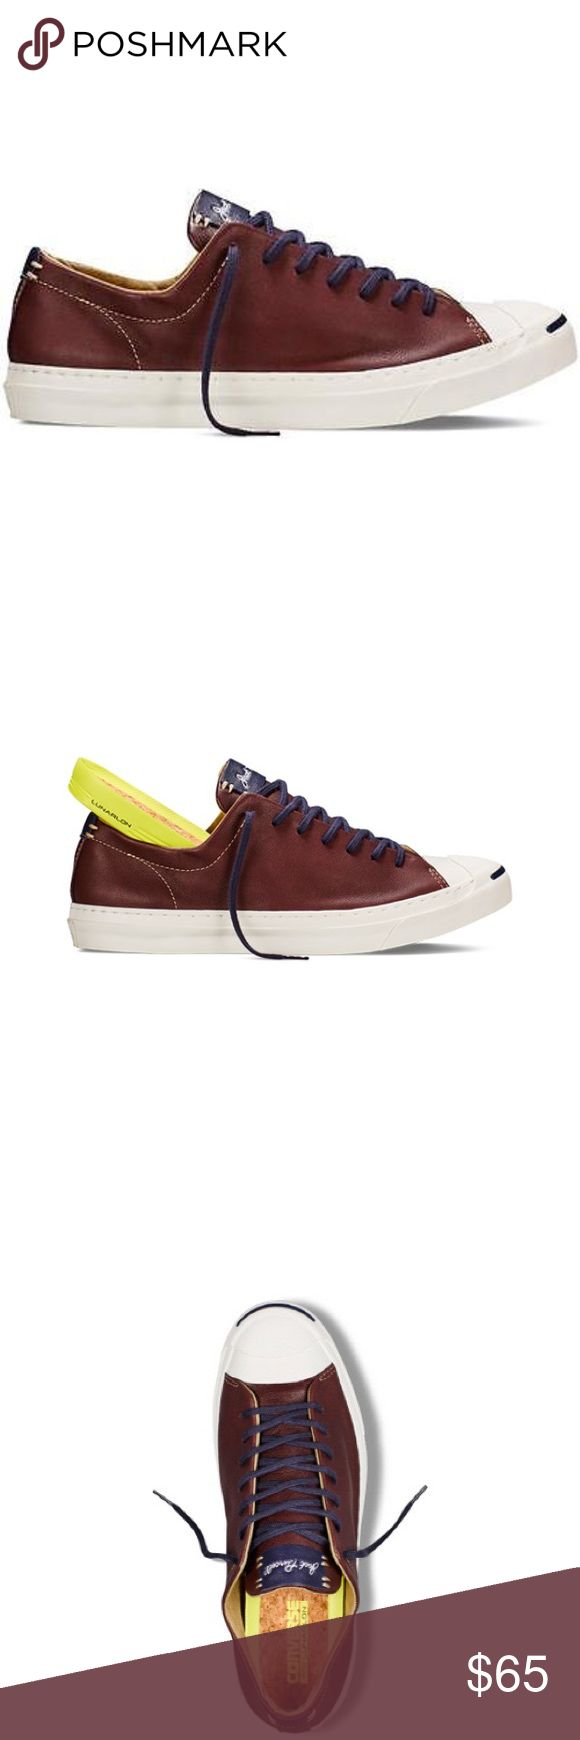 Converse leather jack Purcell brown OX shoes women Converse has reissued the iconic Jack Purcell sneaker giving it a greater premium feel. The updates include a streamlined toe-cap, two piece molded foxing, a wider heel stay and a winged tongue. Premium materials feature throughout, with the use of cotton laces however, it's the foot-bed that brings the magic Lunarlon technology borrowed from Nike gives this style unparalleled comfort. Converse Shoes Sneakers